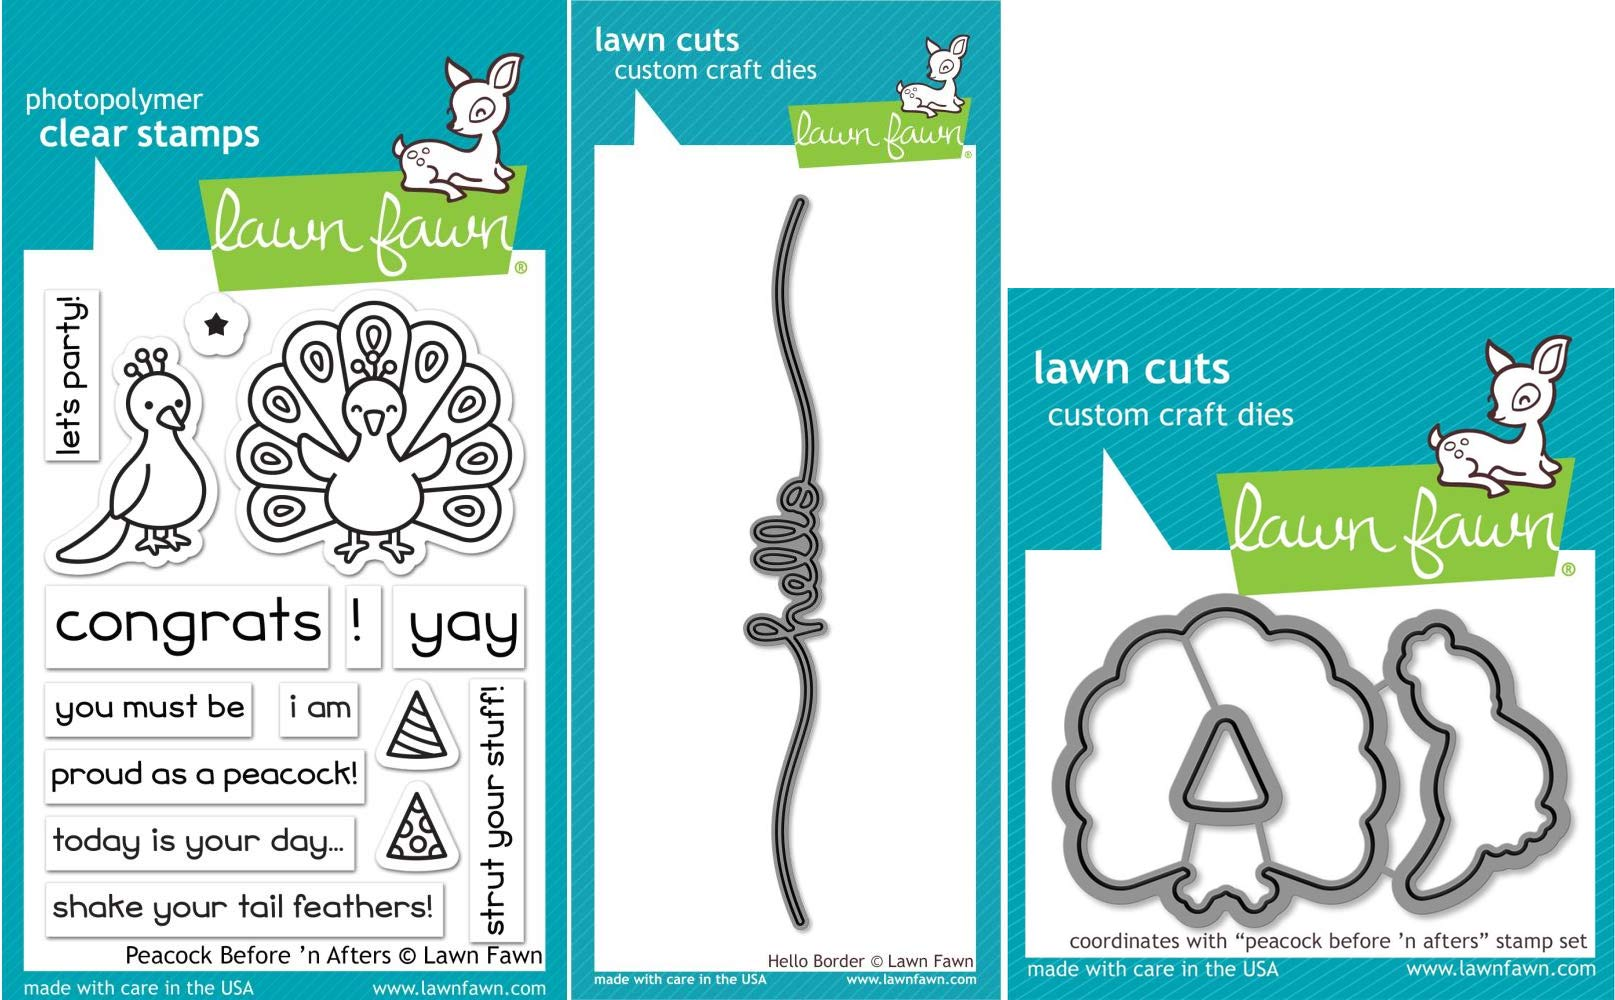 Lawn Fawn - Hello Peacock Bundle - Peacock Before 'n After Clear Stamp and Die Sets with Hello Border Die - 3 Items